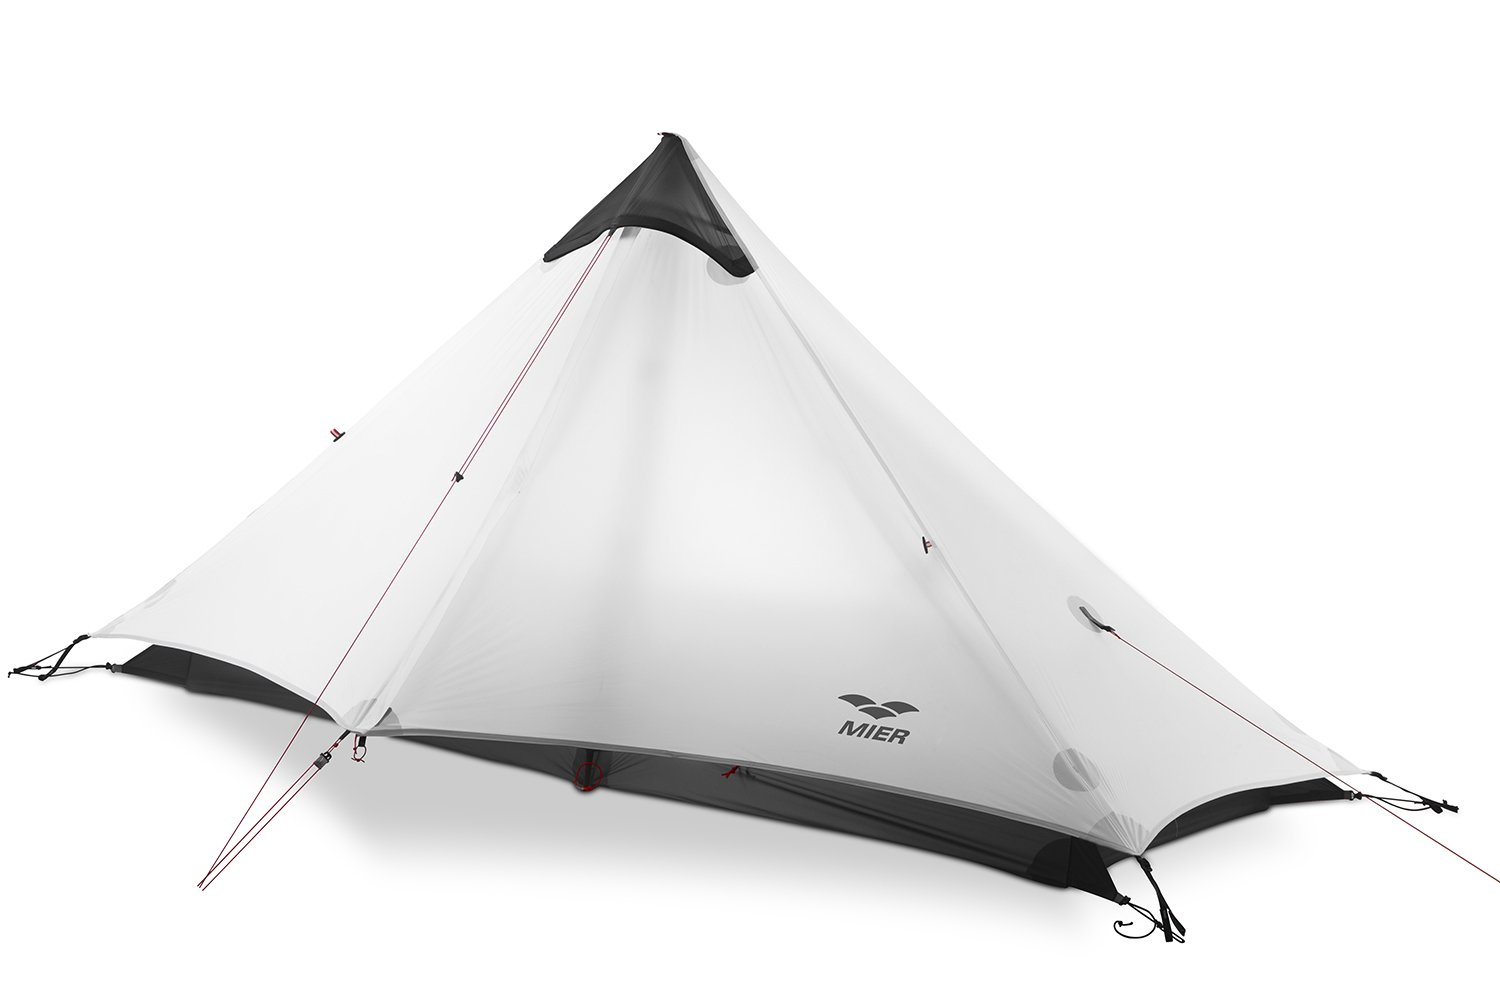 MIER Ultralight Tent 3-Season Backpacking Tent for 1-Person or 2-Person Camping, Trekking, Kayaking, Climbing, Hiking (Trekking Pole is NOT Included), White, 1-Person by MIER